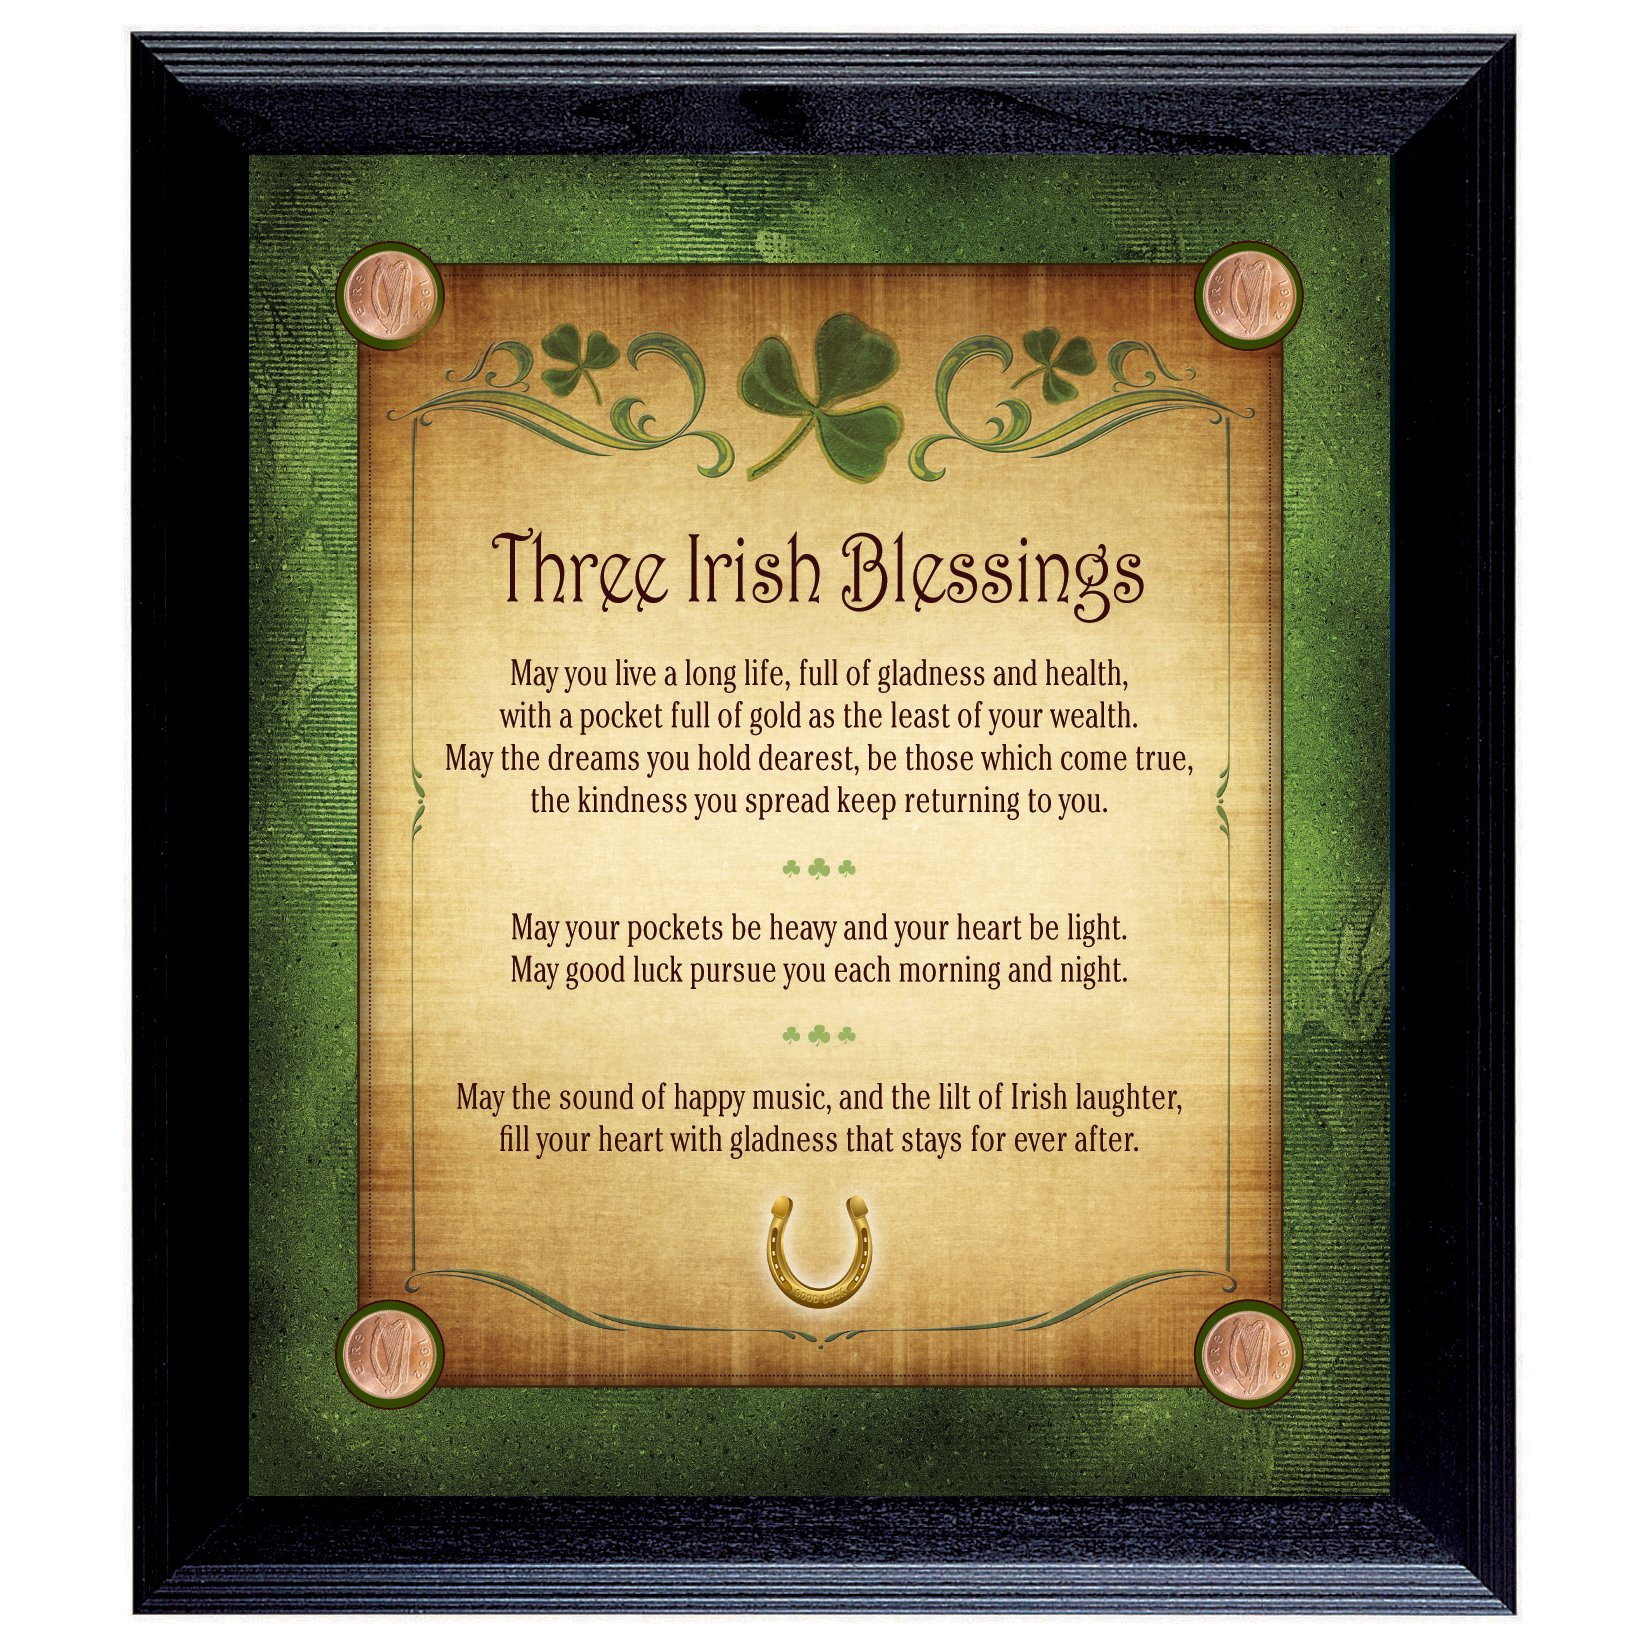 American Coin Treasures Three Irish Blessings with 4 Lucky Irish Pennies Wall Frame